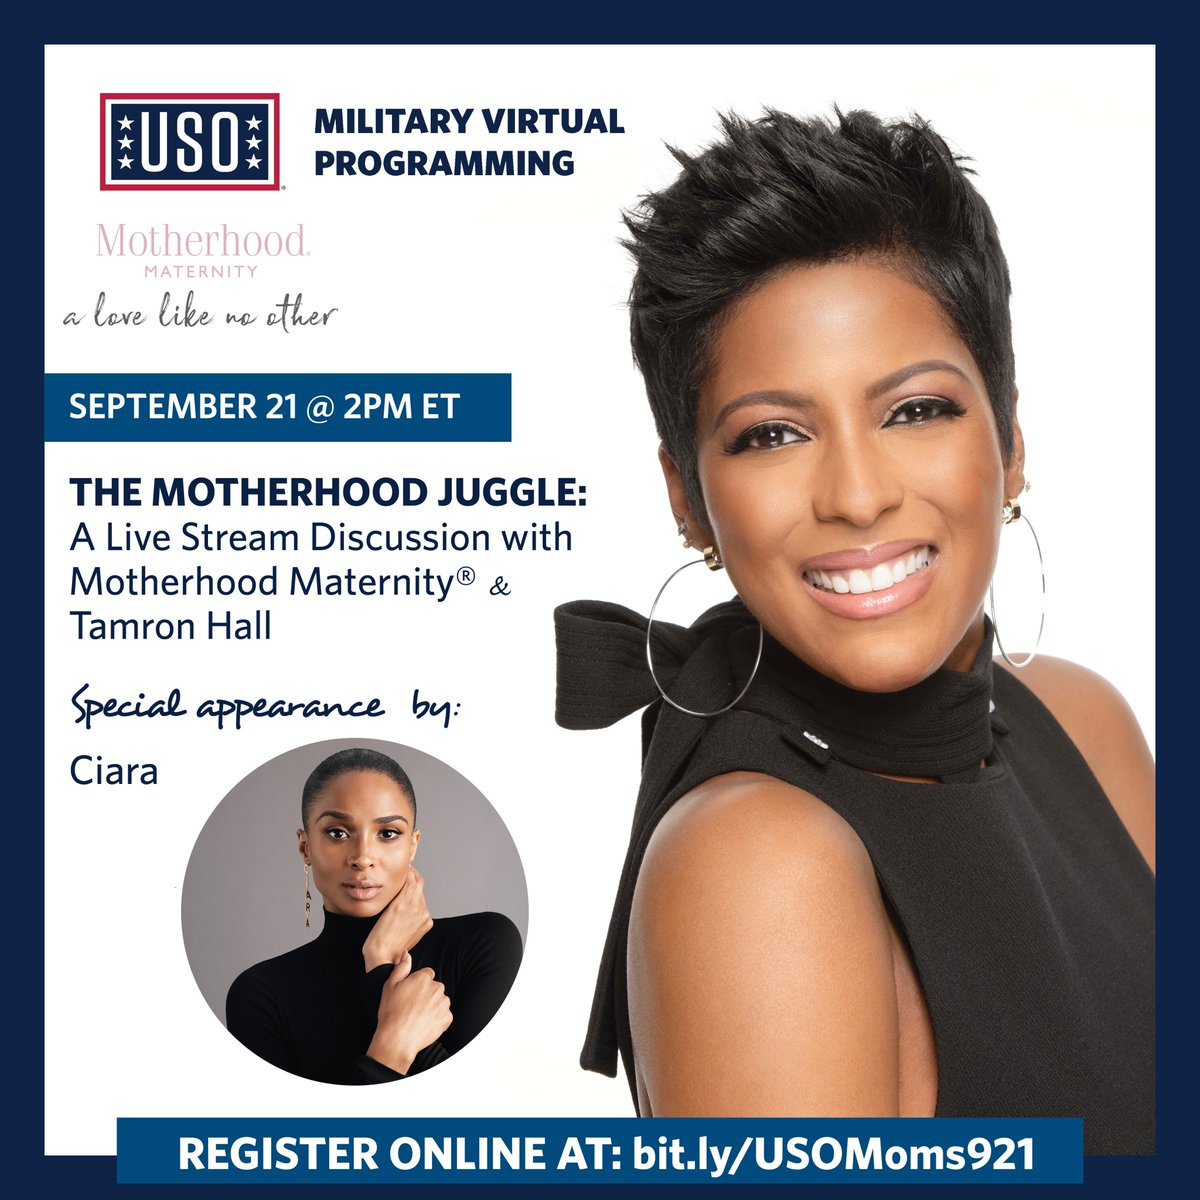 I'm excited to chat with @tamronhall about the motherhood juggle in conjunction with @the_USO! Join us 💃🏽 https://t.co/qtX8NVuooO https://t.co/cfJXmQxkvq